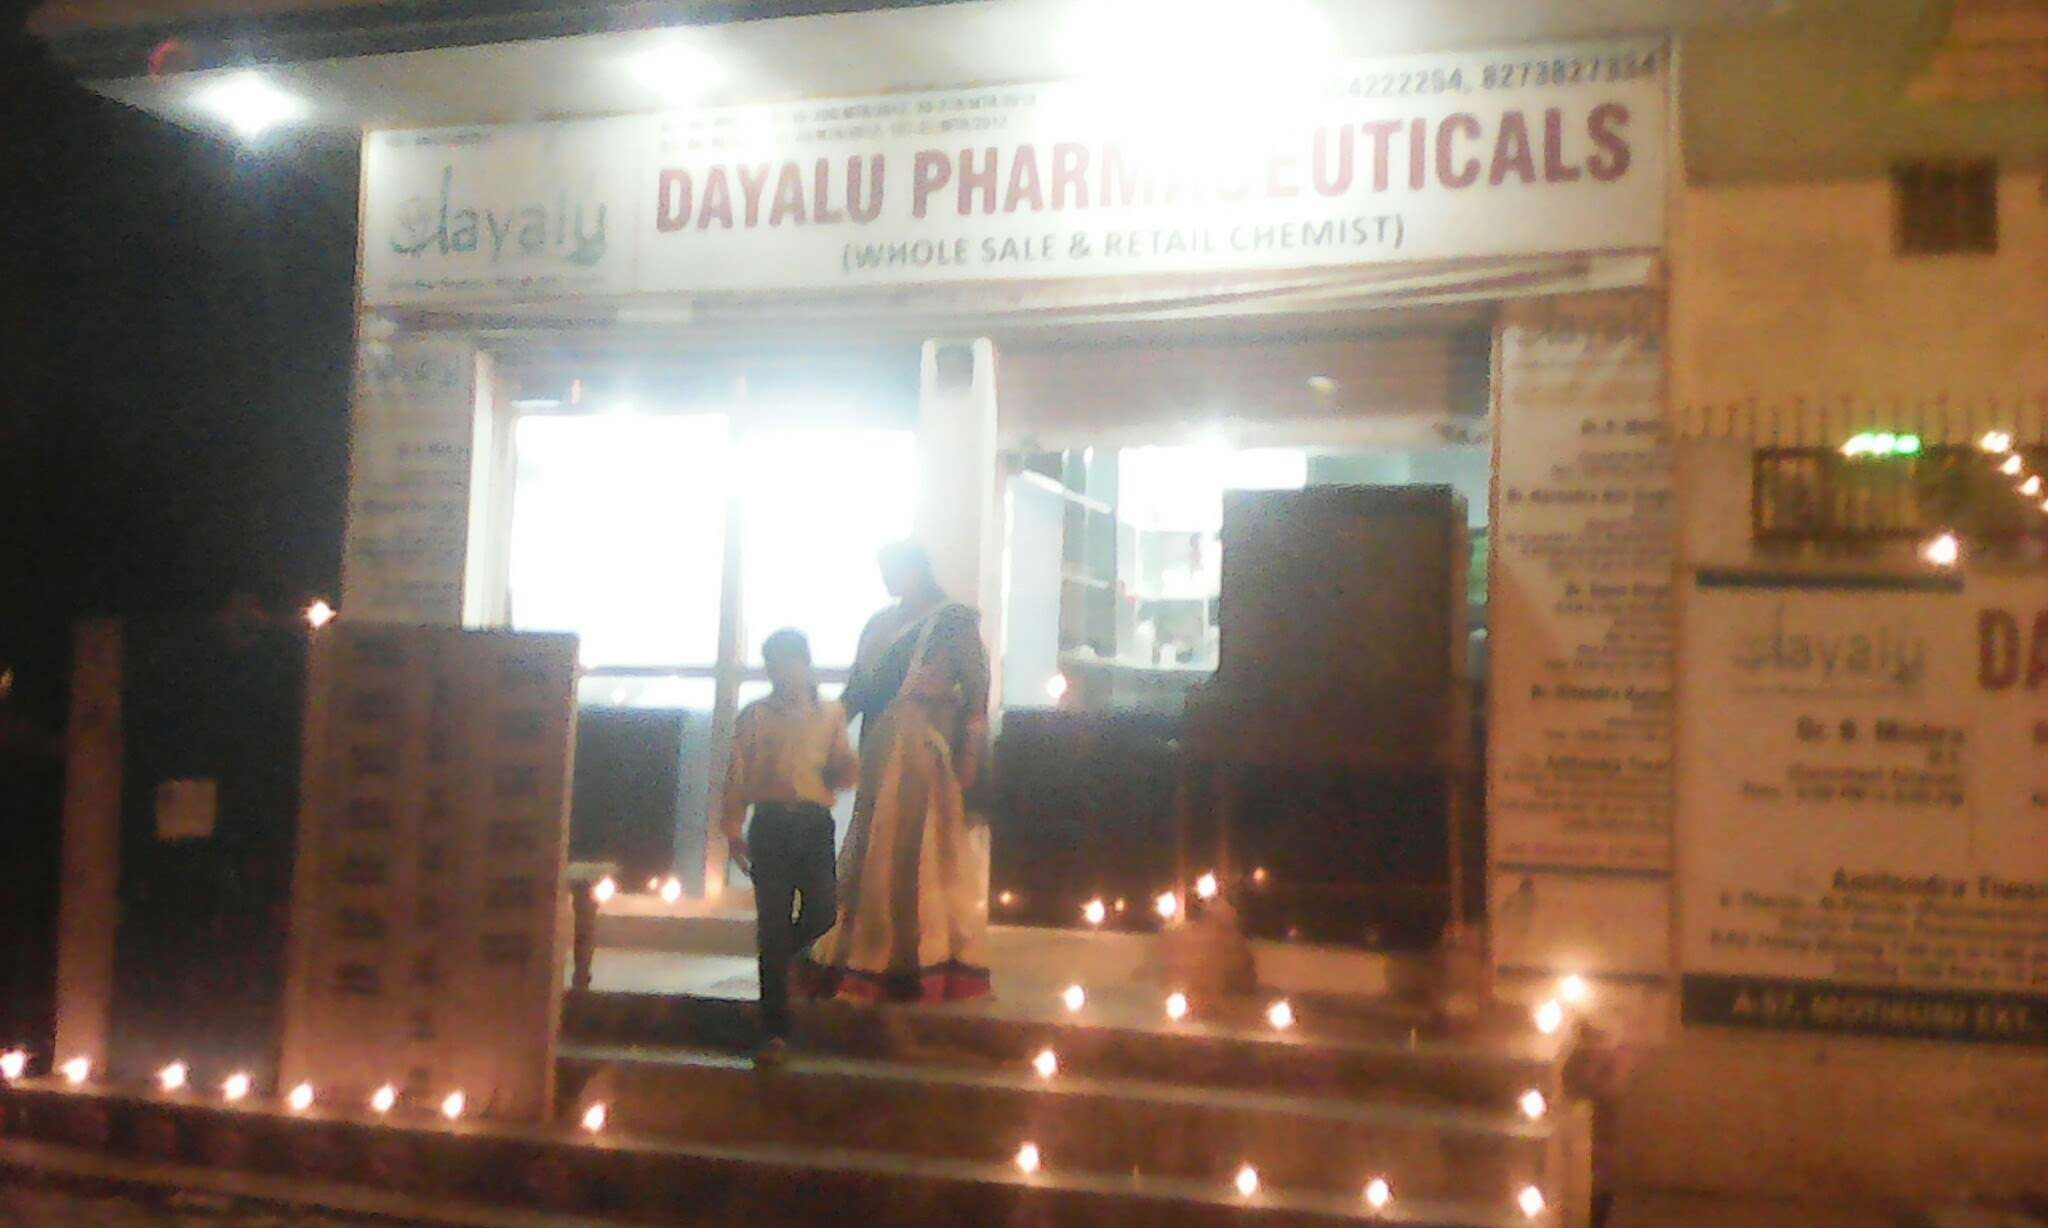 Dayalu Pharmaceuticals Mathura